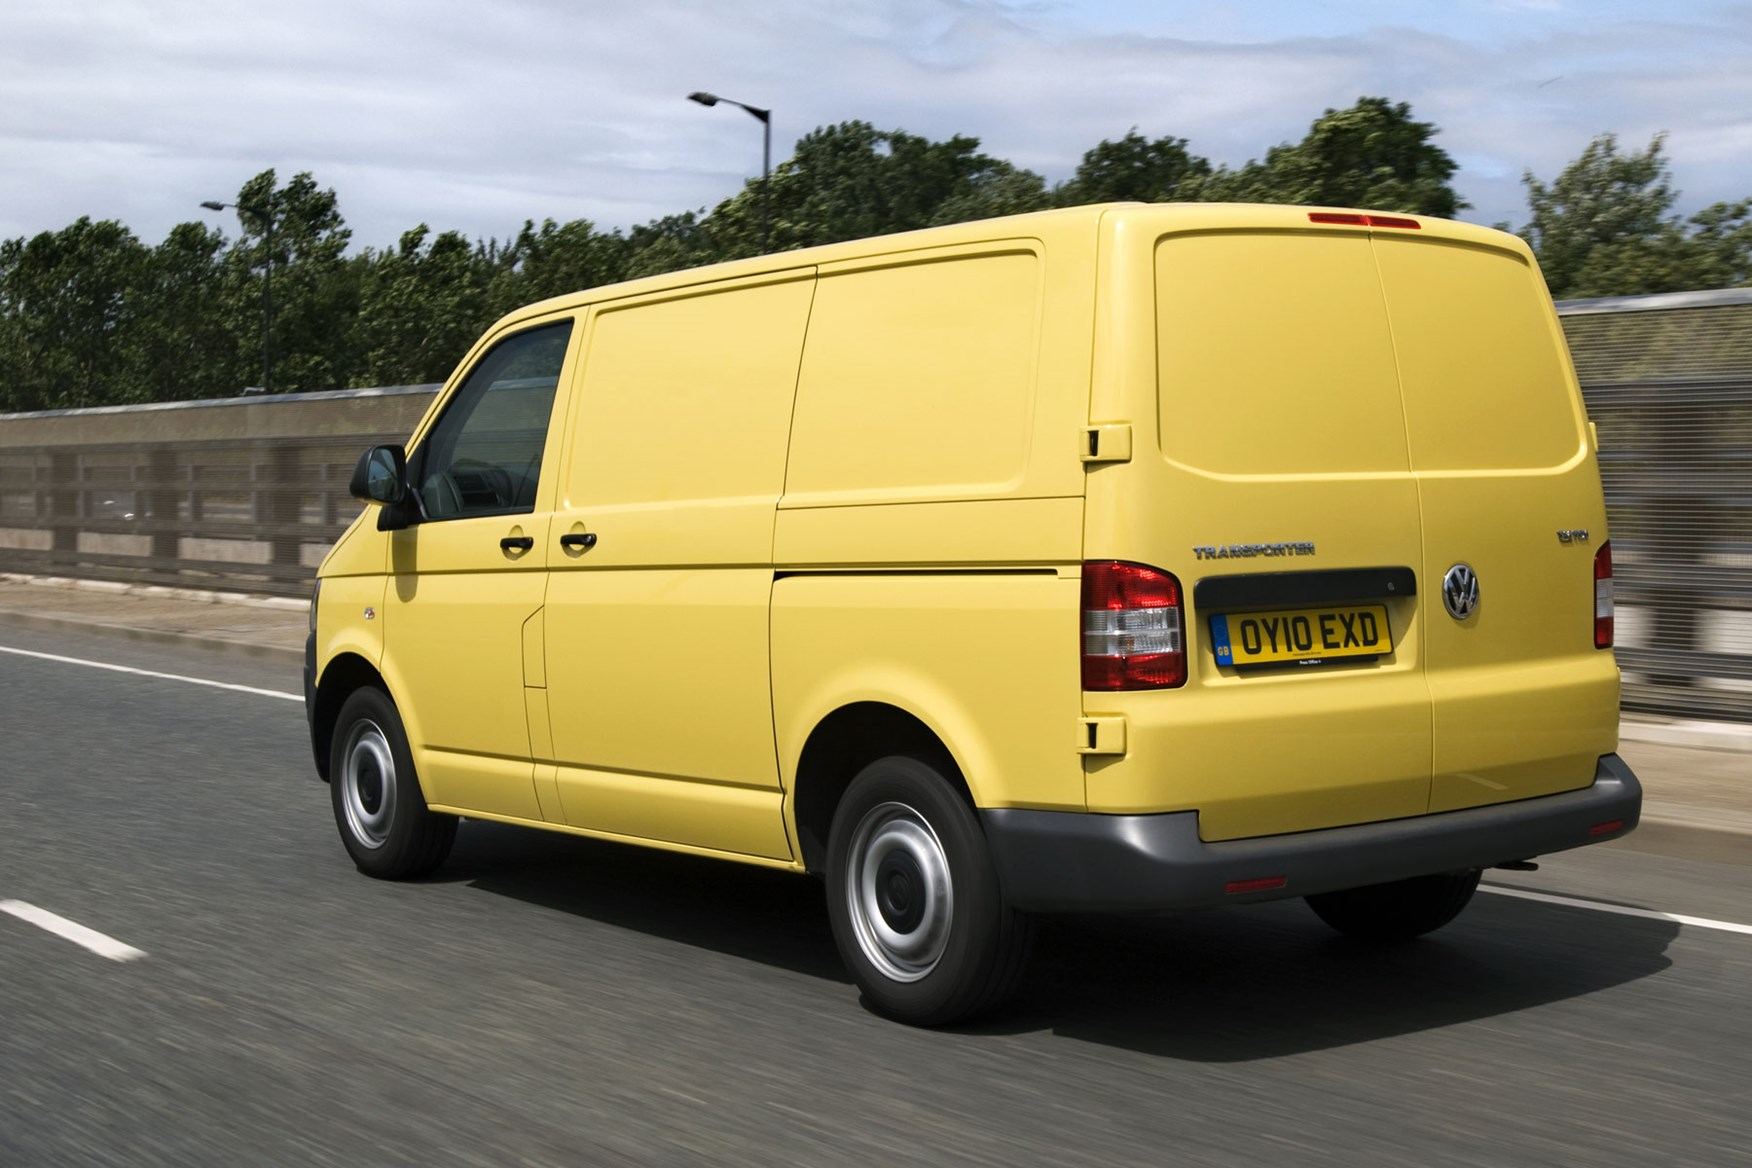 VW Transporter T5 (2010-2015) safety and security